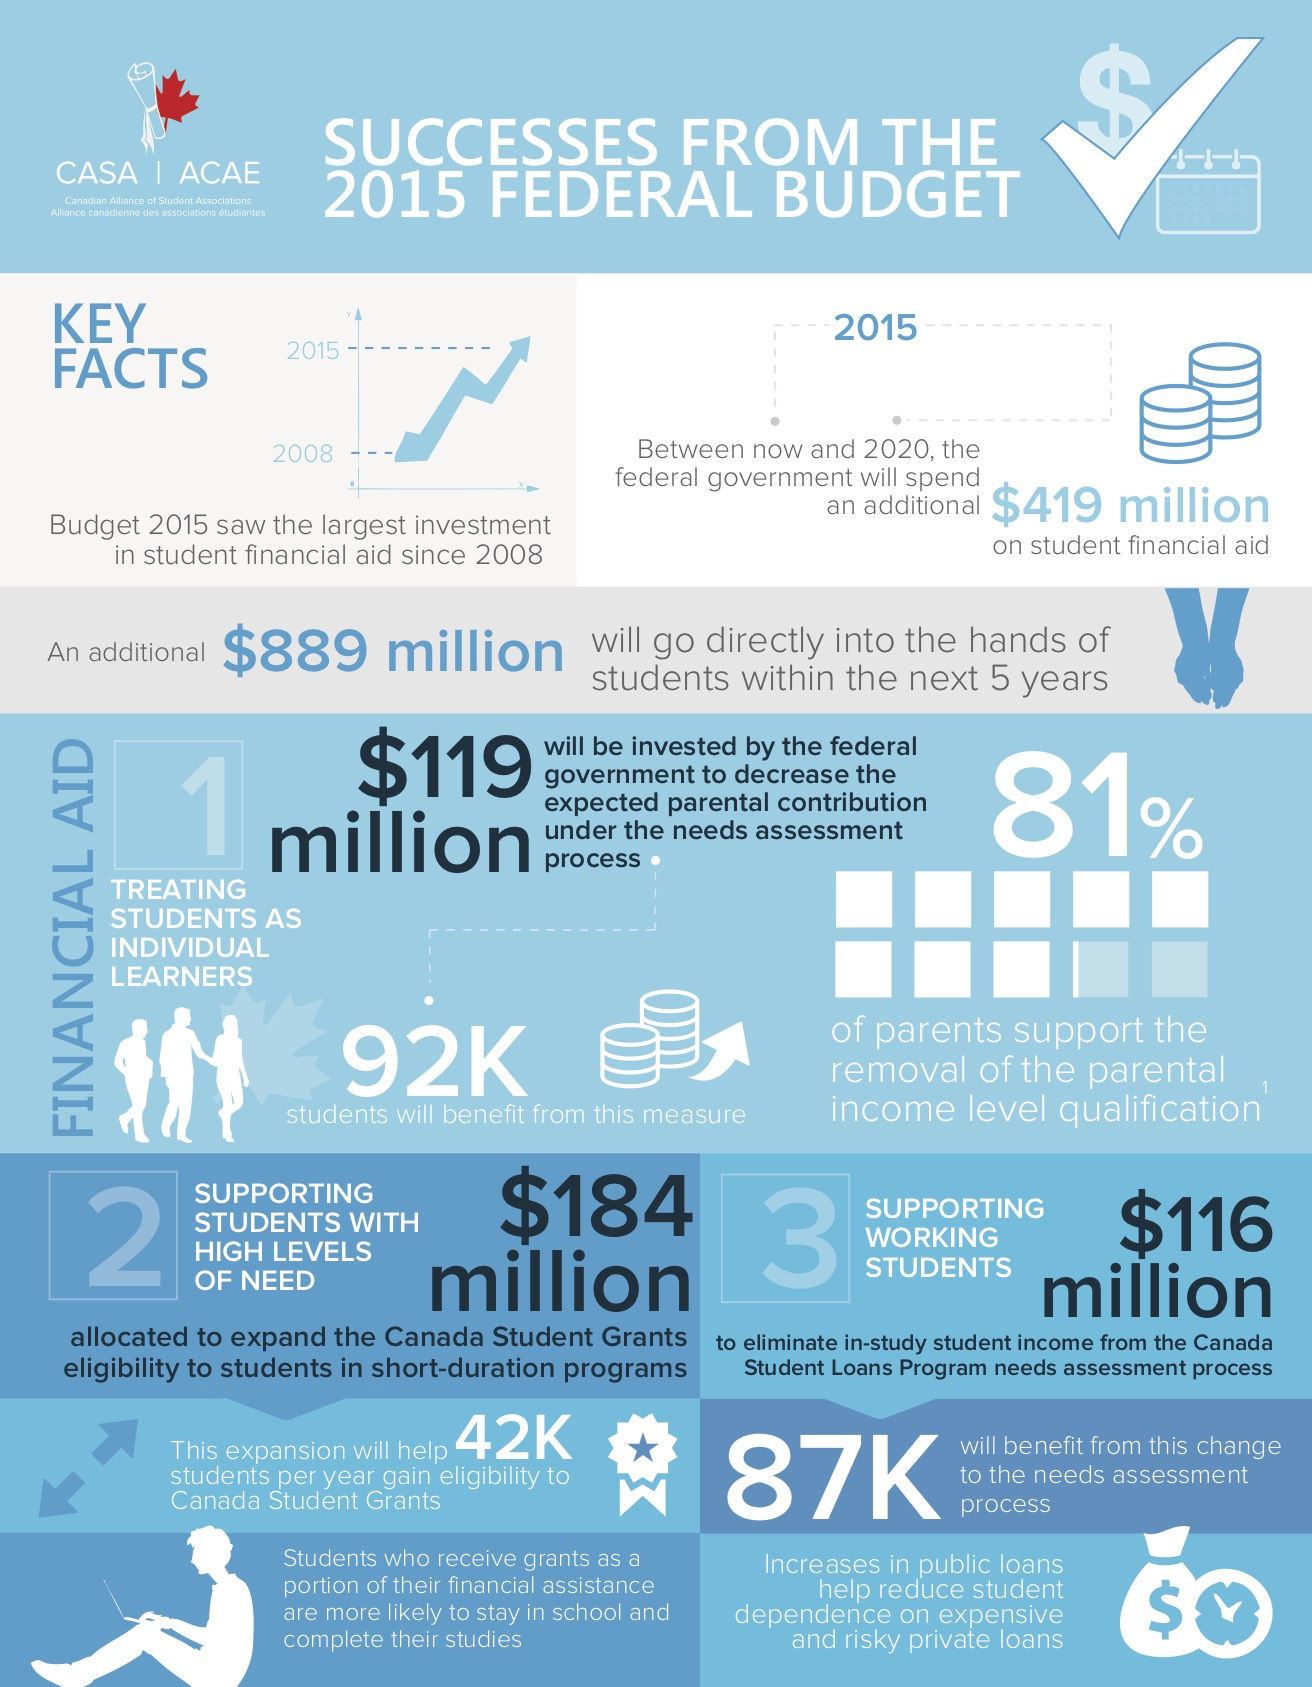 Successes-from-the-2015-Budget.jpg